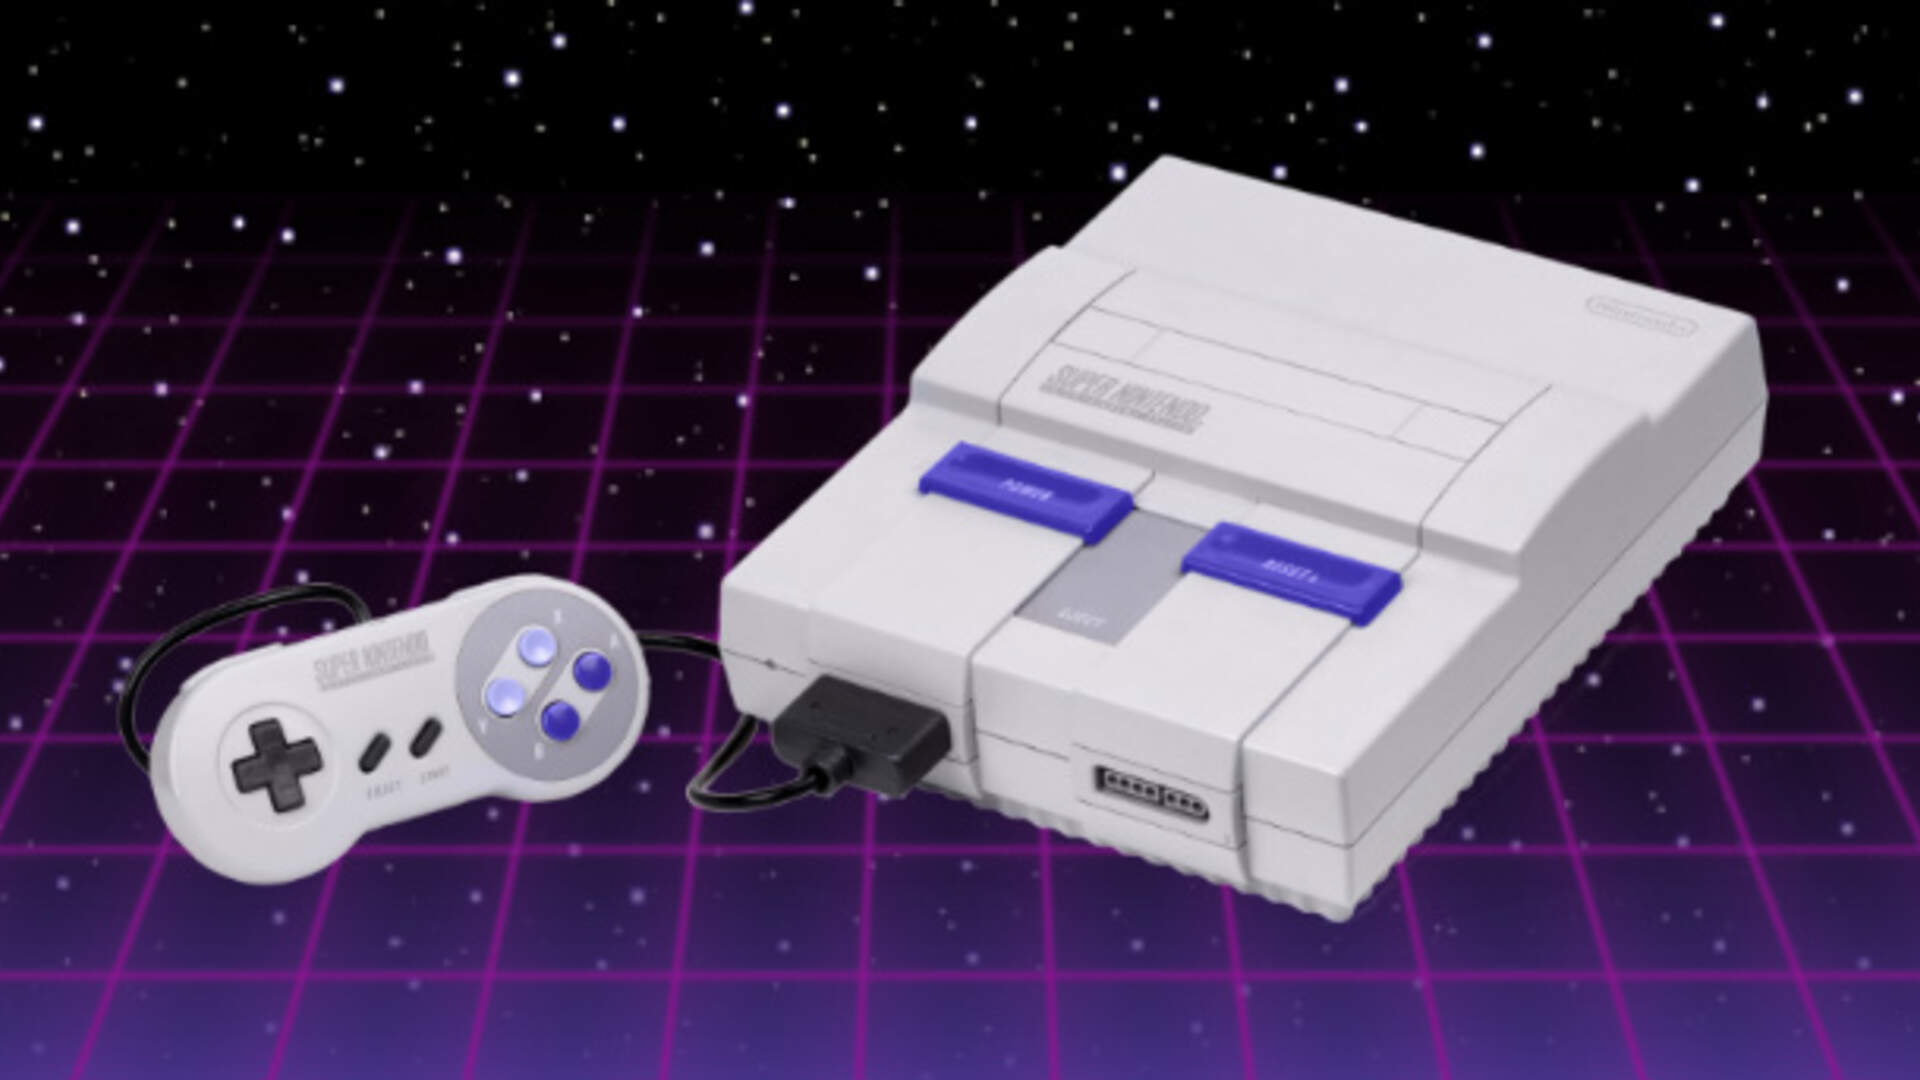 SNES Classic Preorders Reportedly Live on Best Buy, May Require Refreshing [Updated]